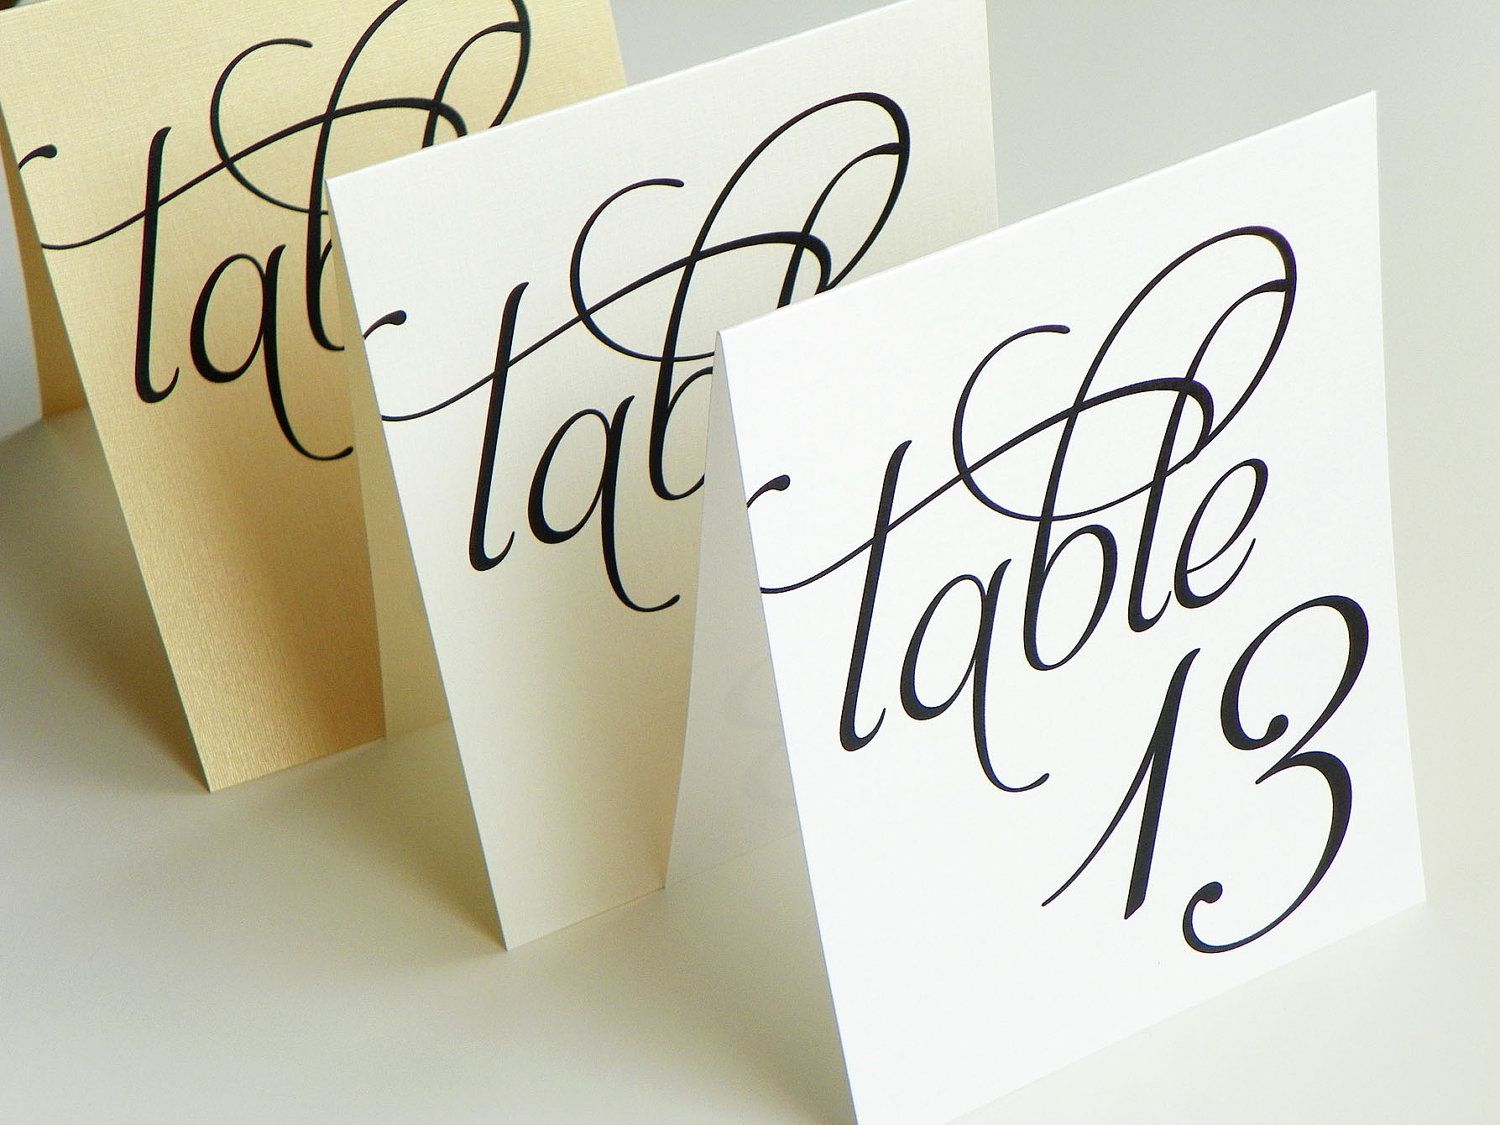 Scripted Pearl Shimmer Table Numbers - Table Number Cards - Tent Table Cards. $16.50  sc 1 st  Pinterest : tent style table numbers - memphite.com